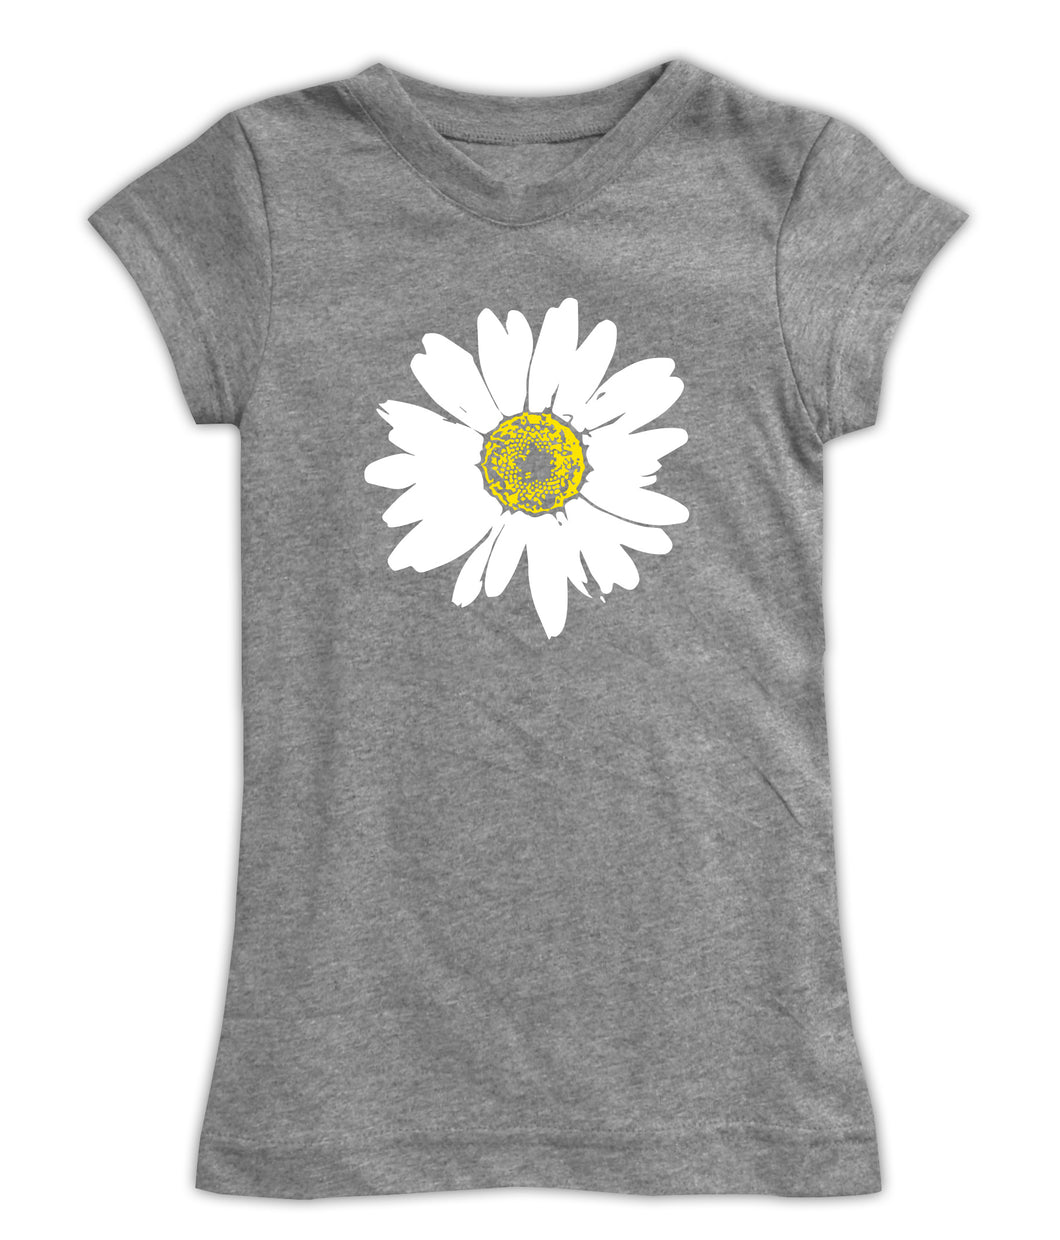 Giant Daisy Fitted Tee